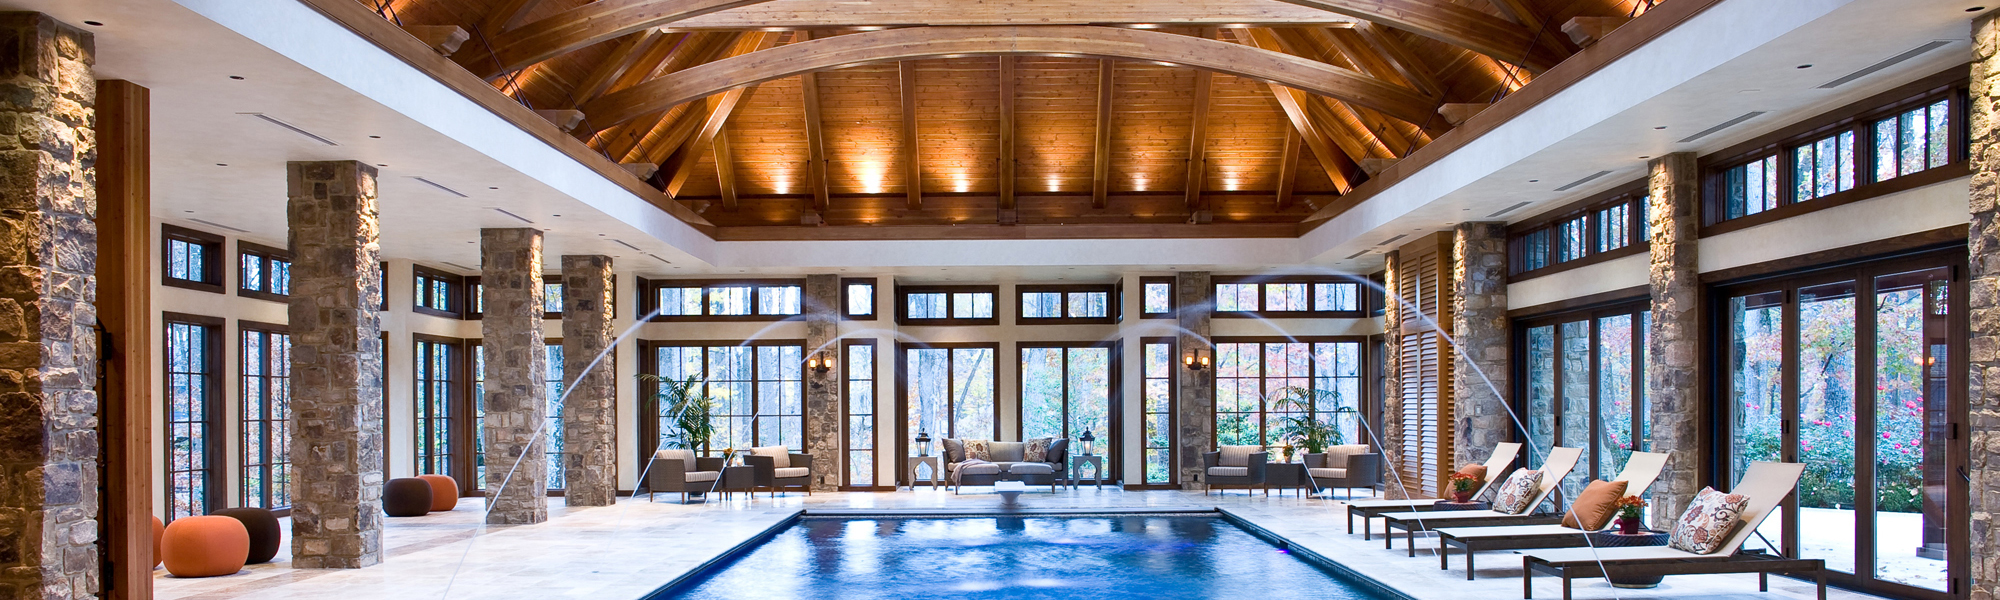 Exterior: Indoor Pool And Great Room Addition In Potomac, MD